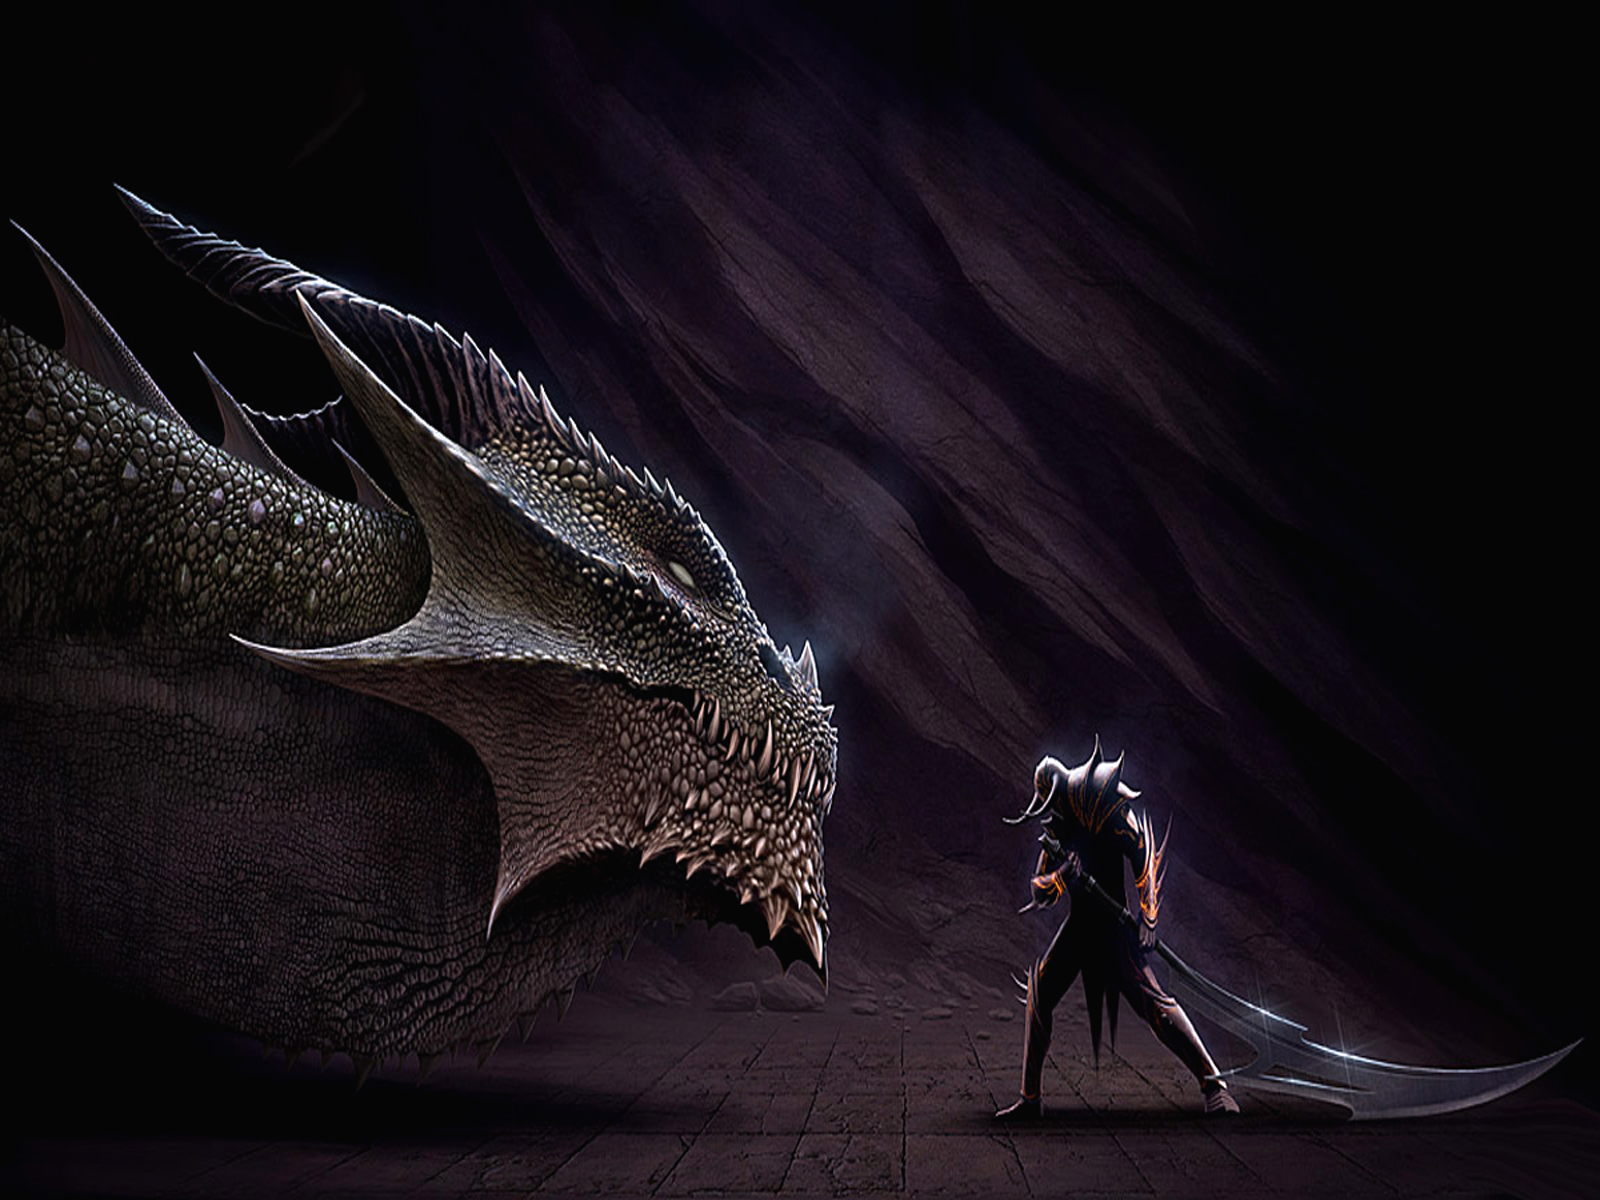 1954 dragon hd wallpapers | background images - wallpaper abyss - page 2